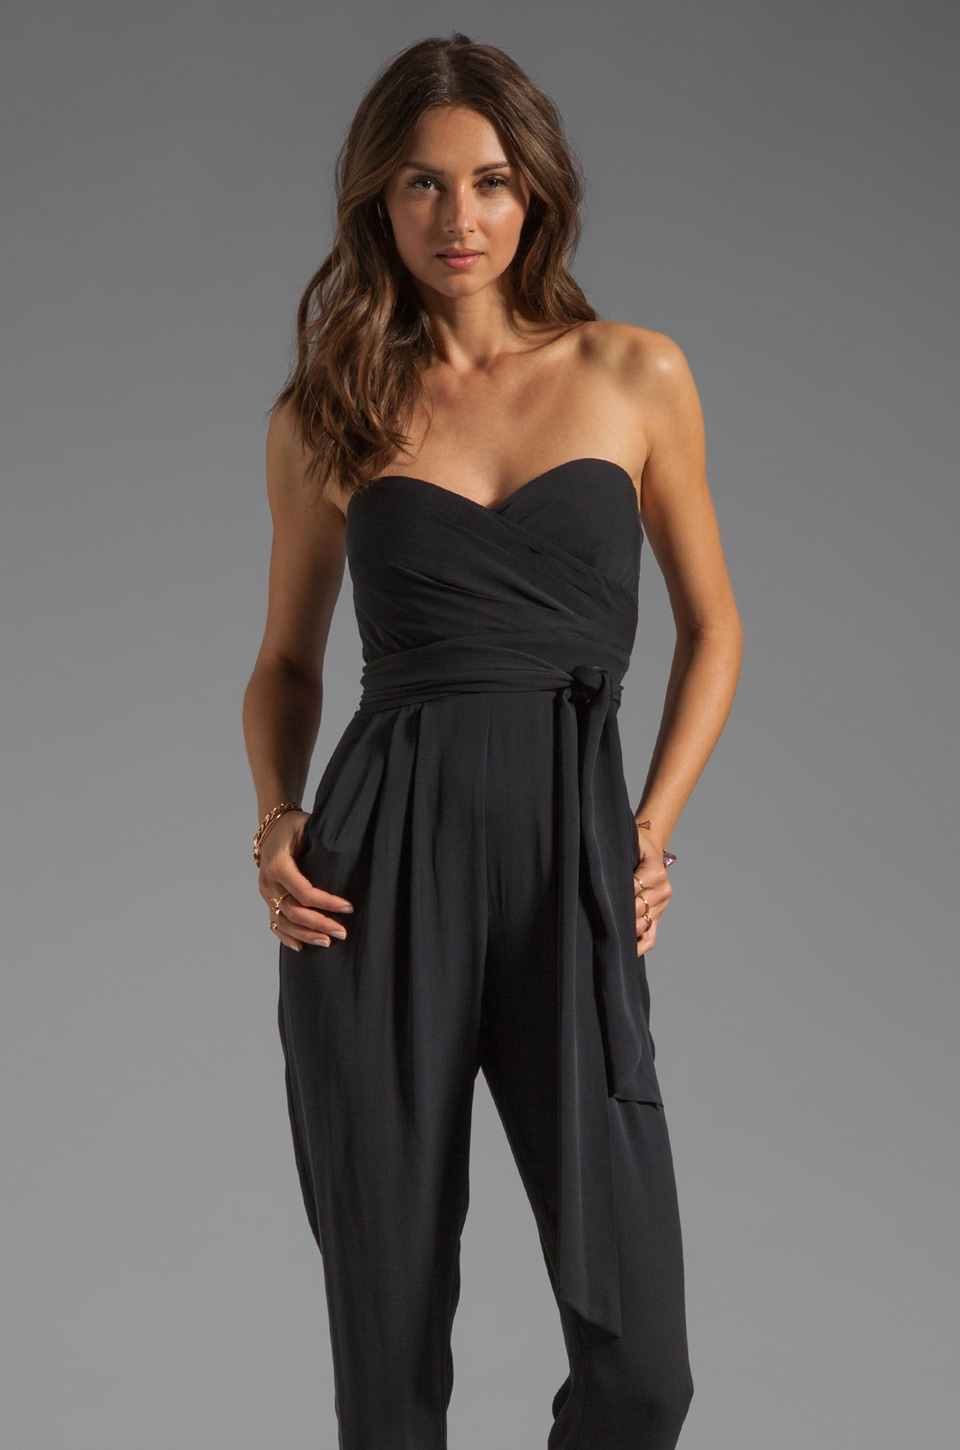 Catherine Malandrino Strapless Jumpsuit in Noir